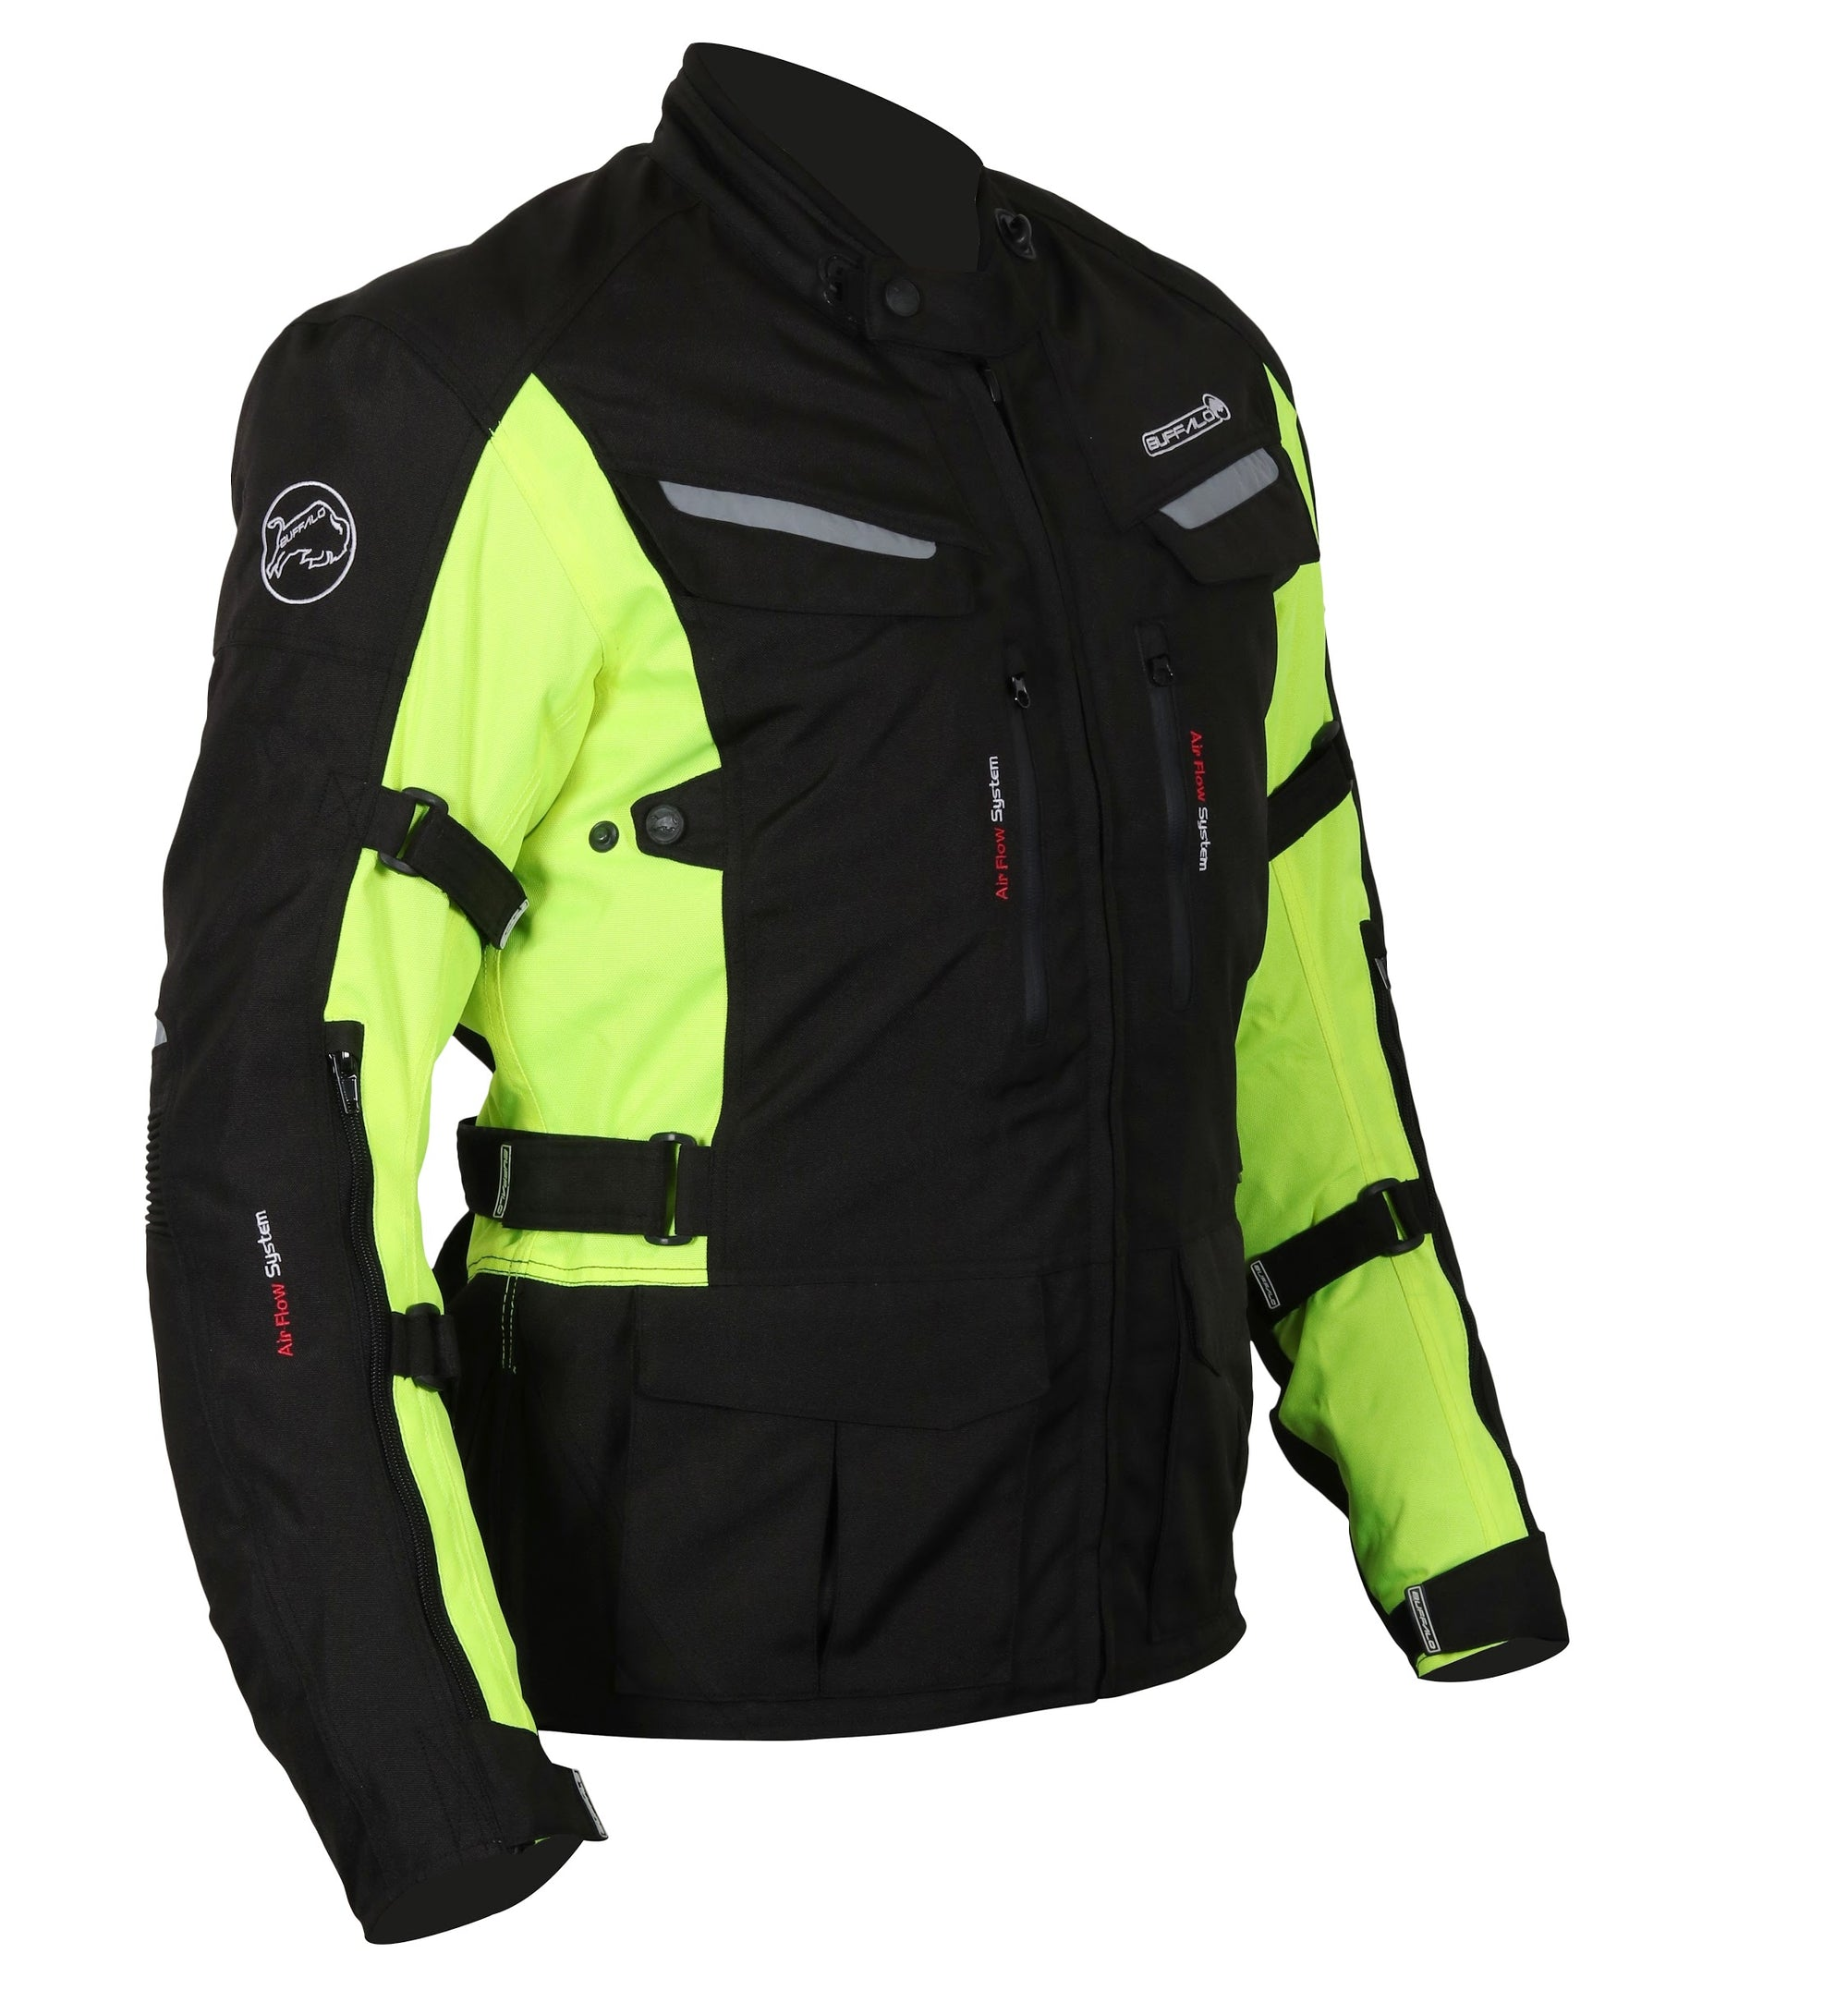 Vortex, Jacket, Buffalo - Averys Motorcycles